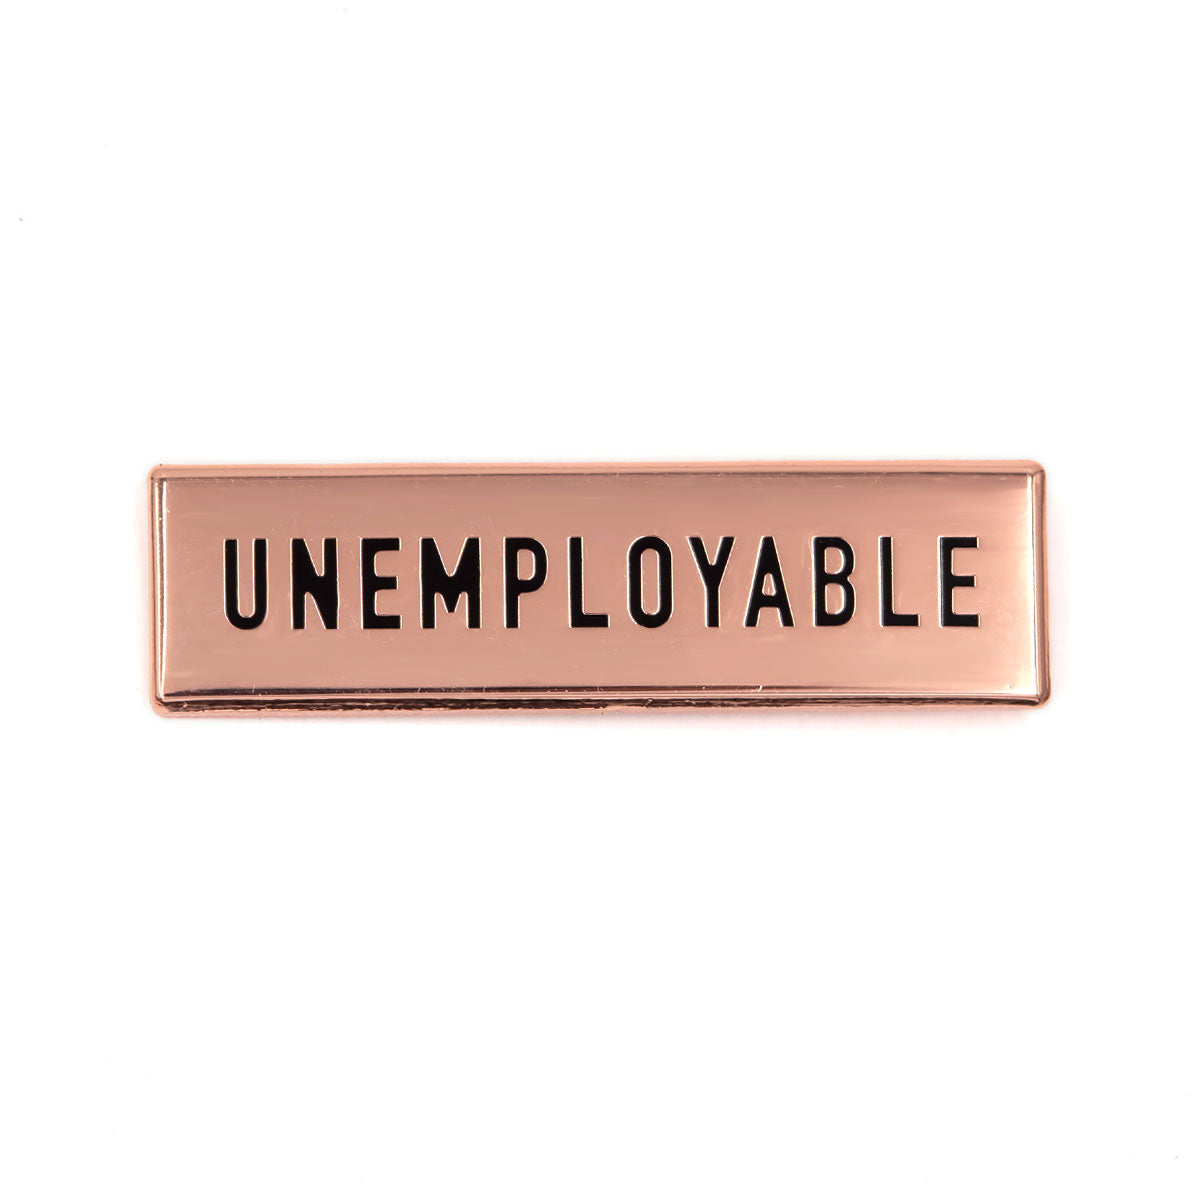 Unemployable Pin